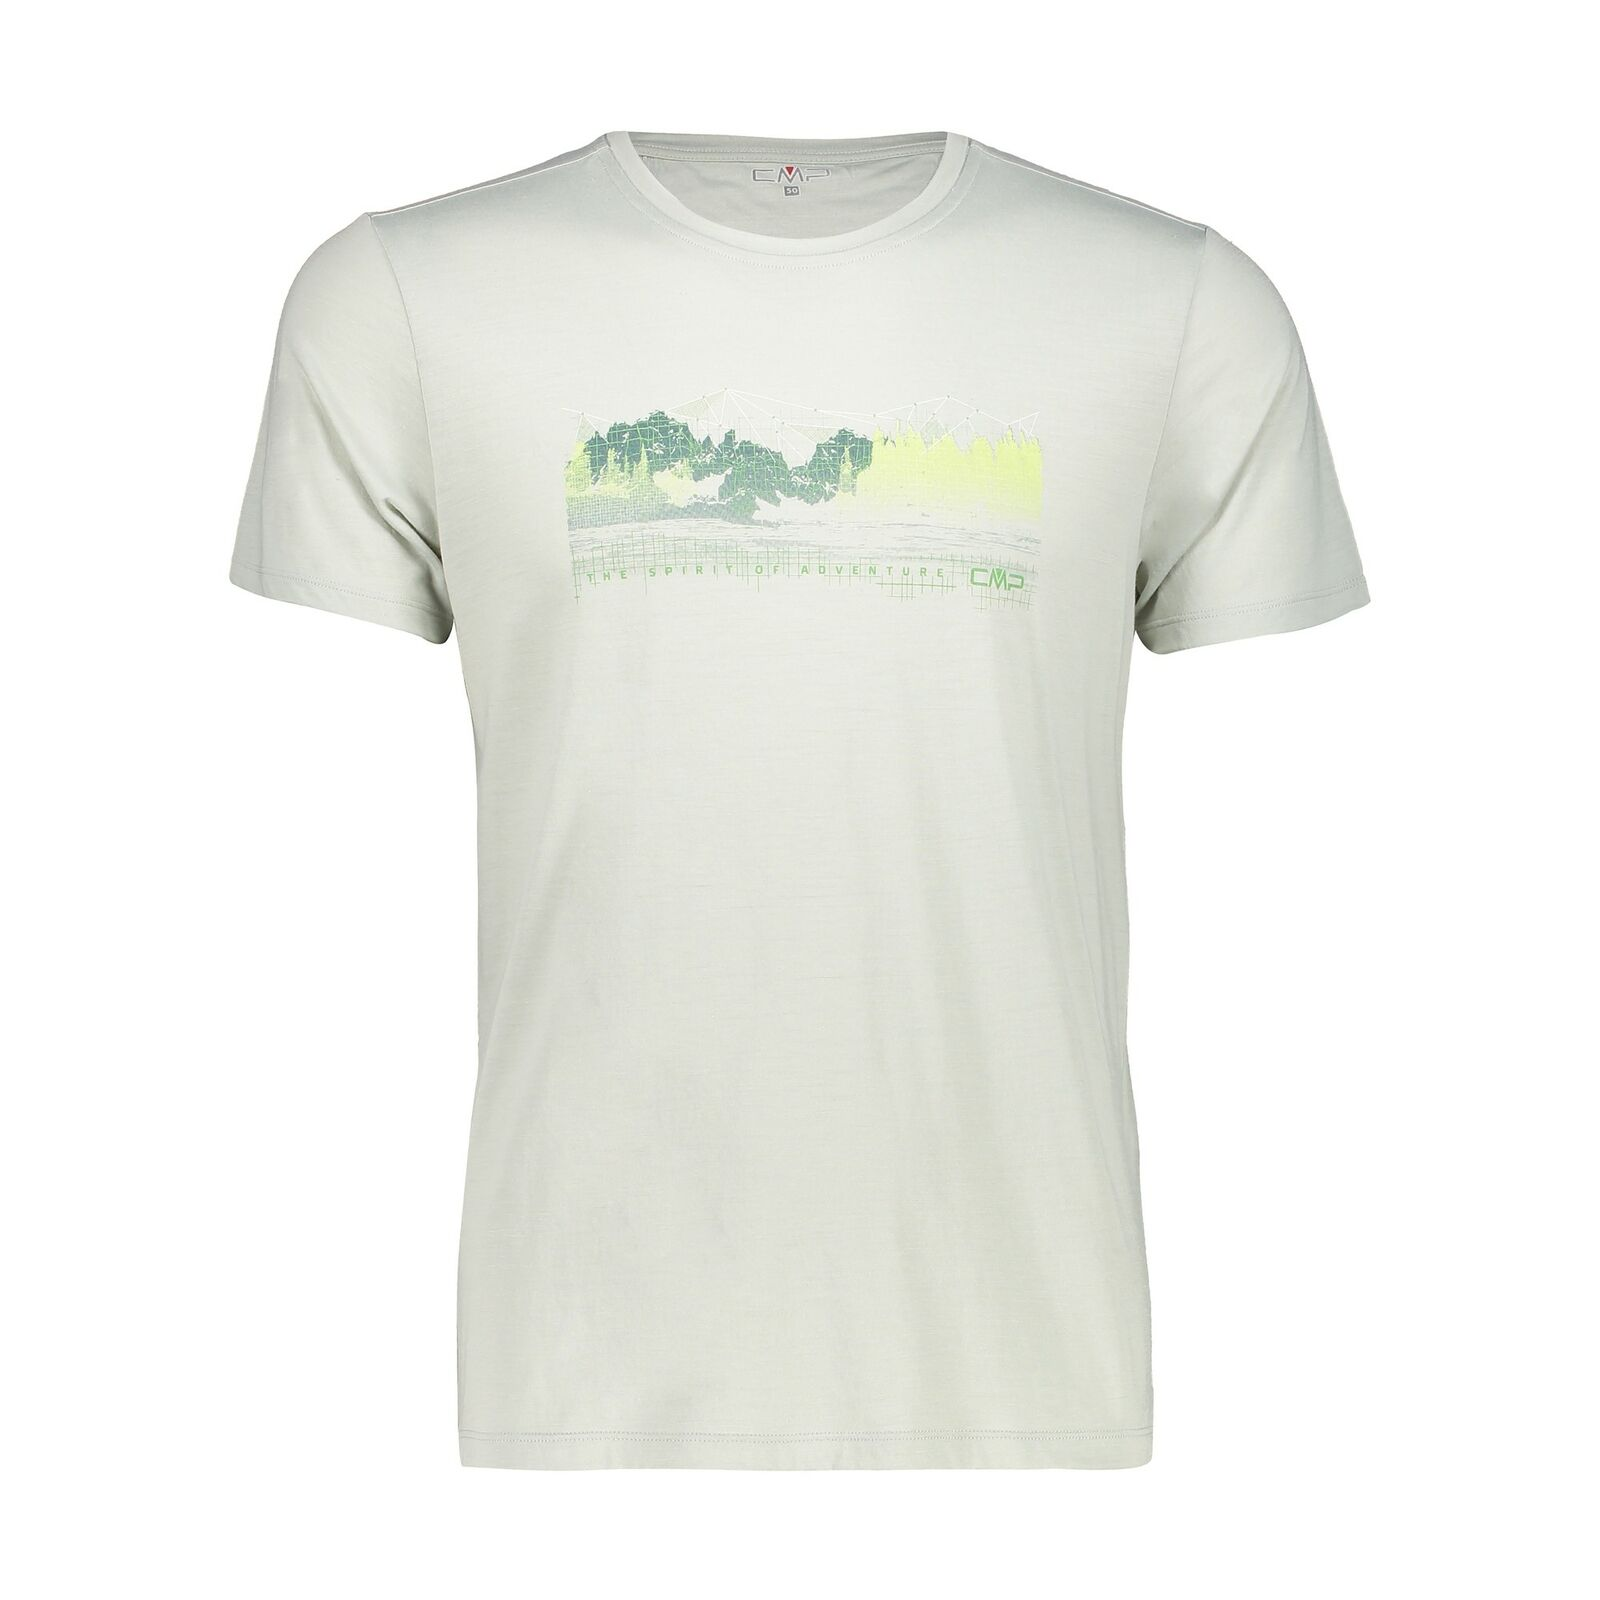 Functional  shirt CMP a t-shirt light grey breathable refreshing heating  discount